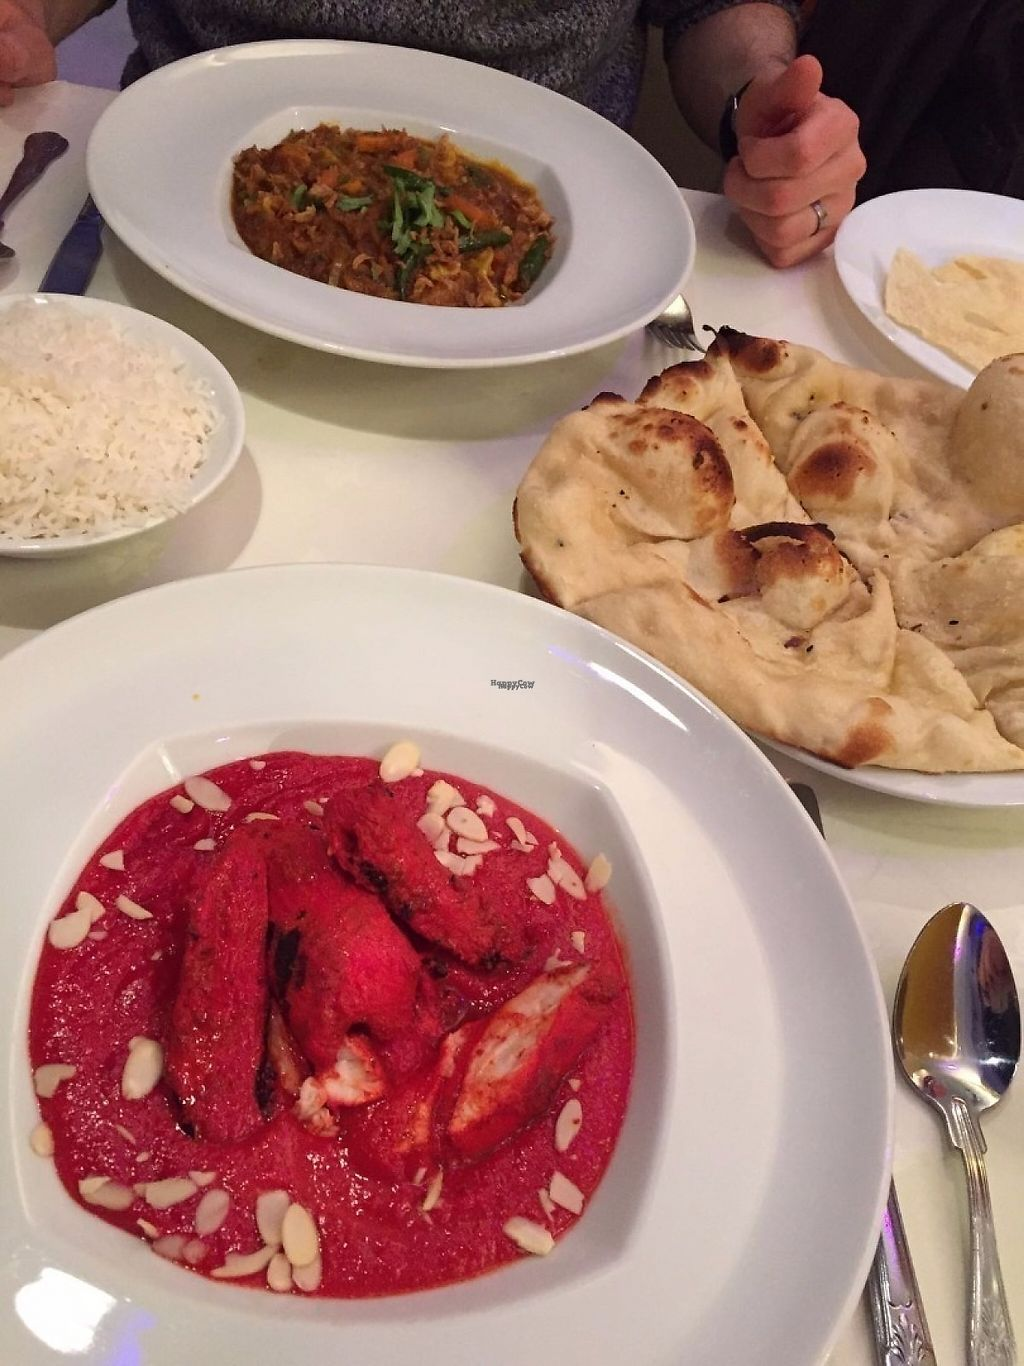 """Photo of Jadoo  by <a href=""""/members/profile/RossChambers"""">RossChambers</a> <br/>Vegetable Jalfrezi and a chicken tikka masala <br/> March 19, 2017  - <a href='/contact/abuse/image/60080/238243'>Report</a>"""